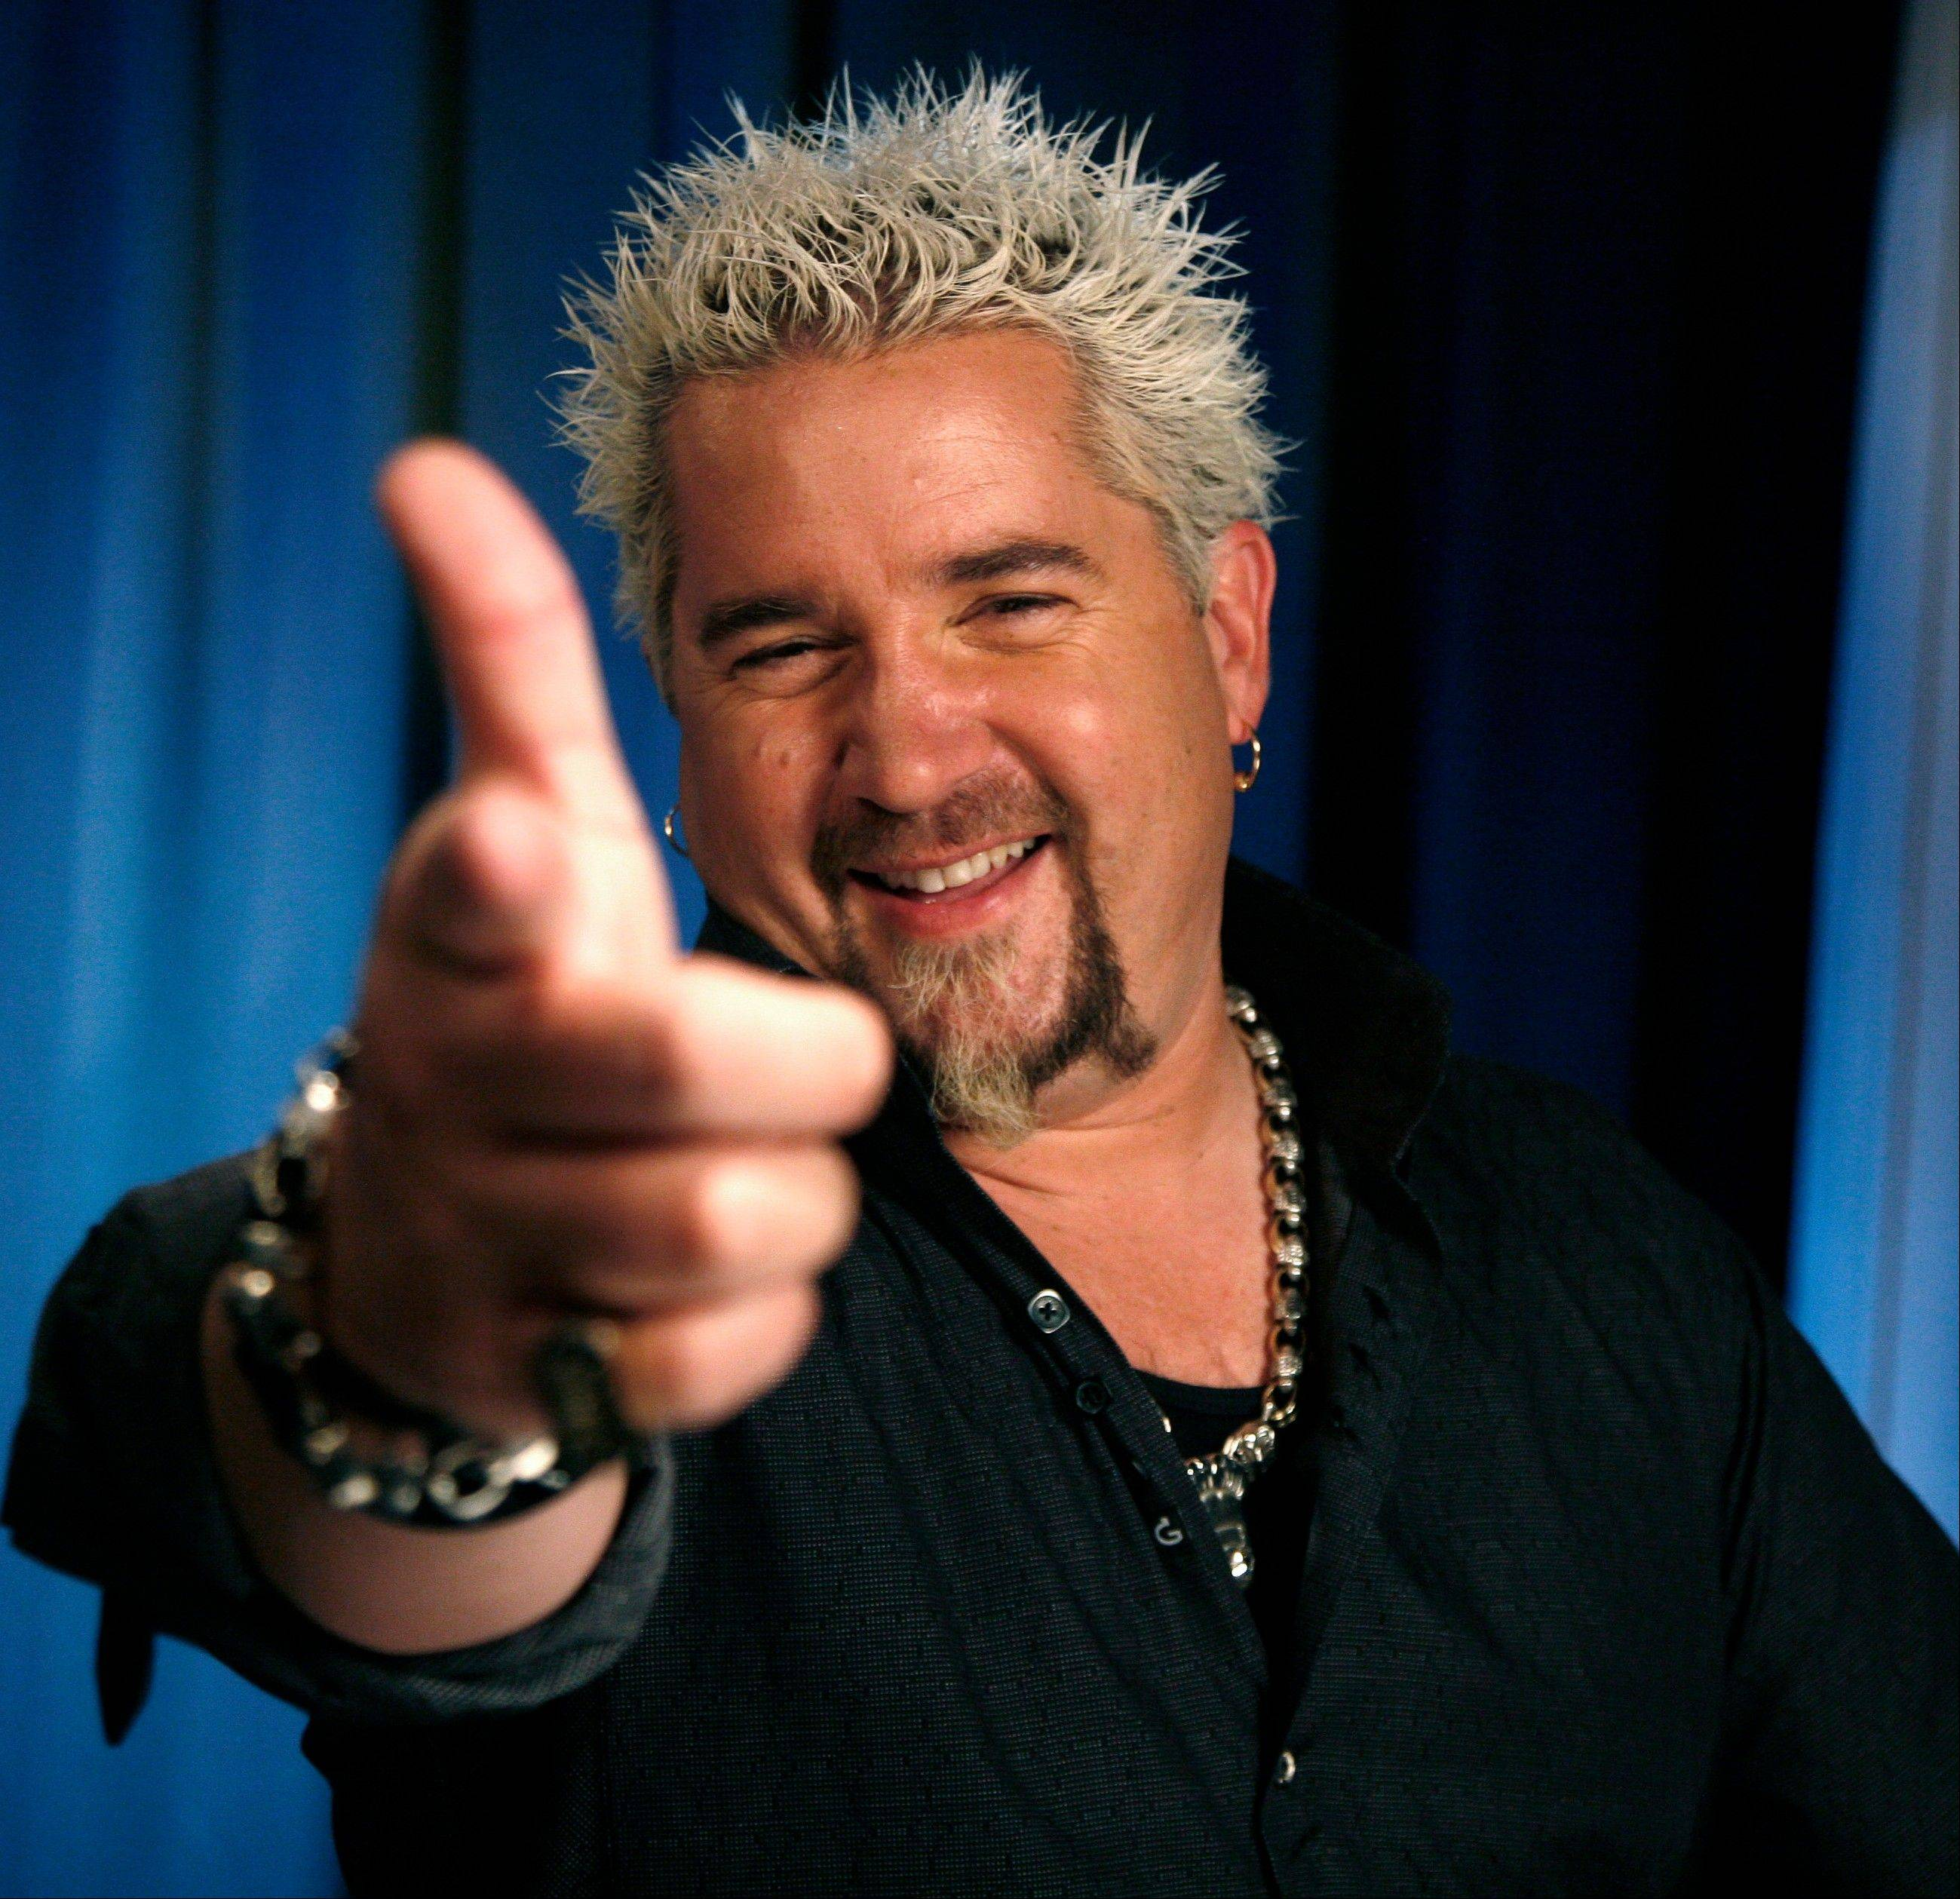 TV personality Guy Fieri's Times Square restaurant -- Guy's American Kitchen & Bar -- snagged a scathing review in The New York Times.